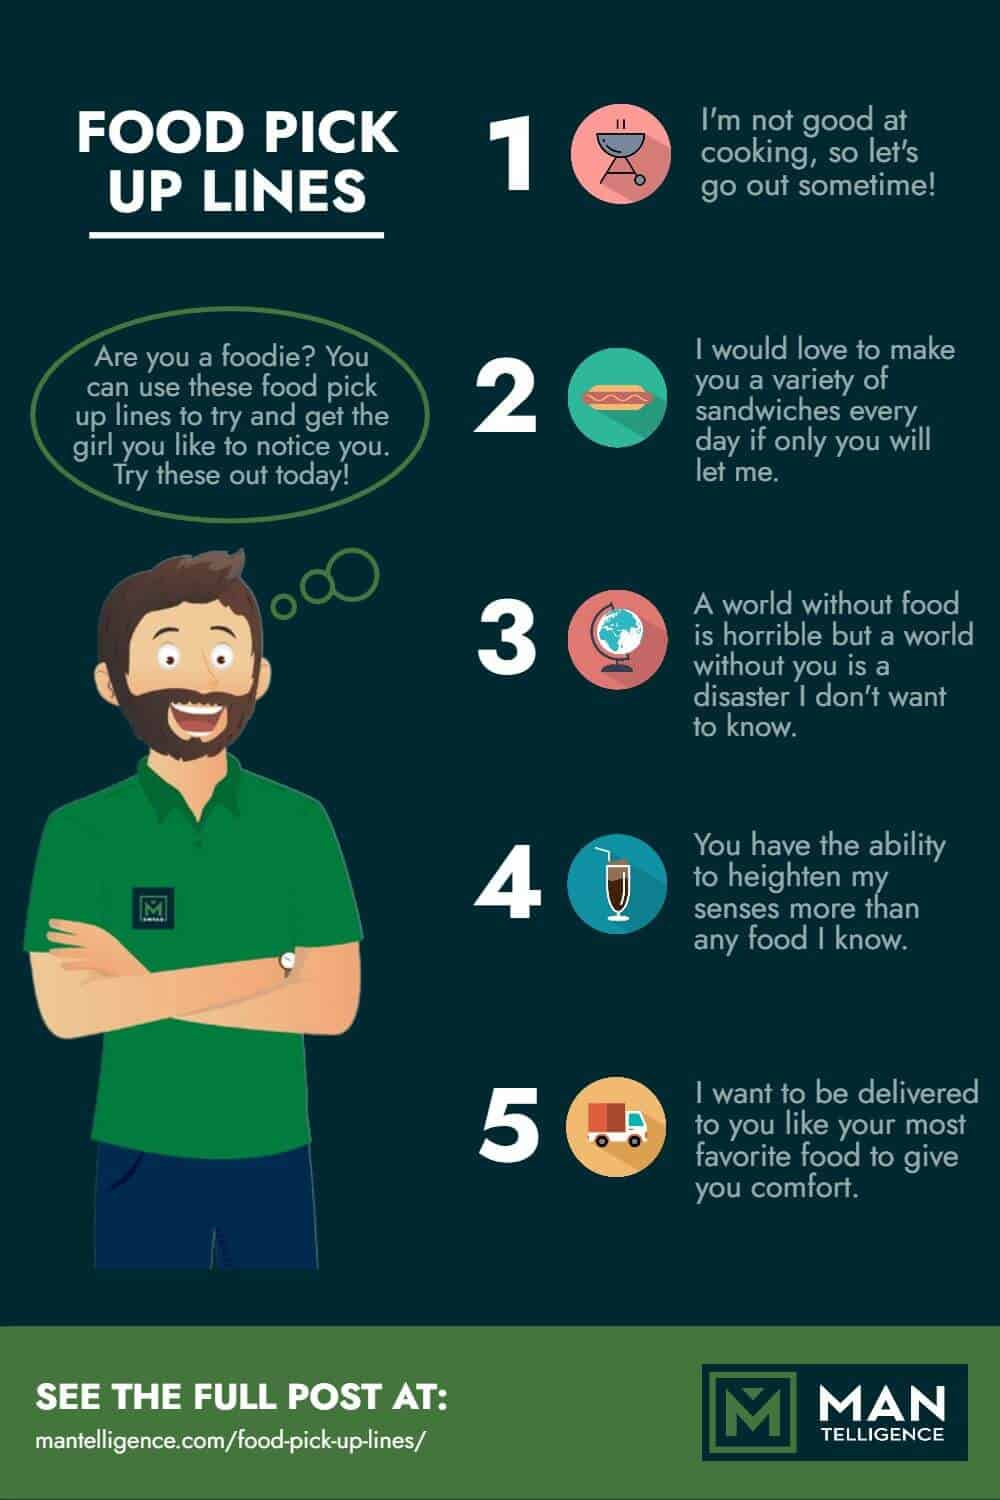 Food Pick Up Lines - infographic